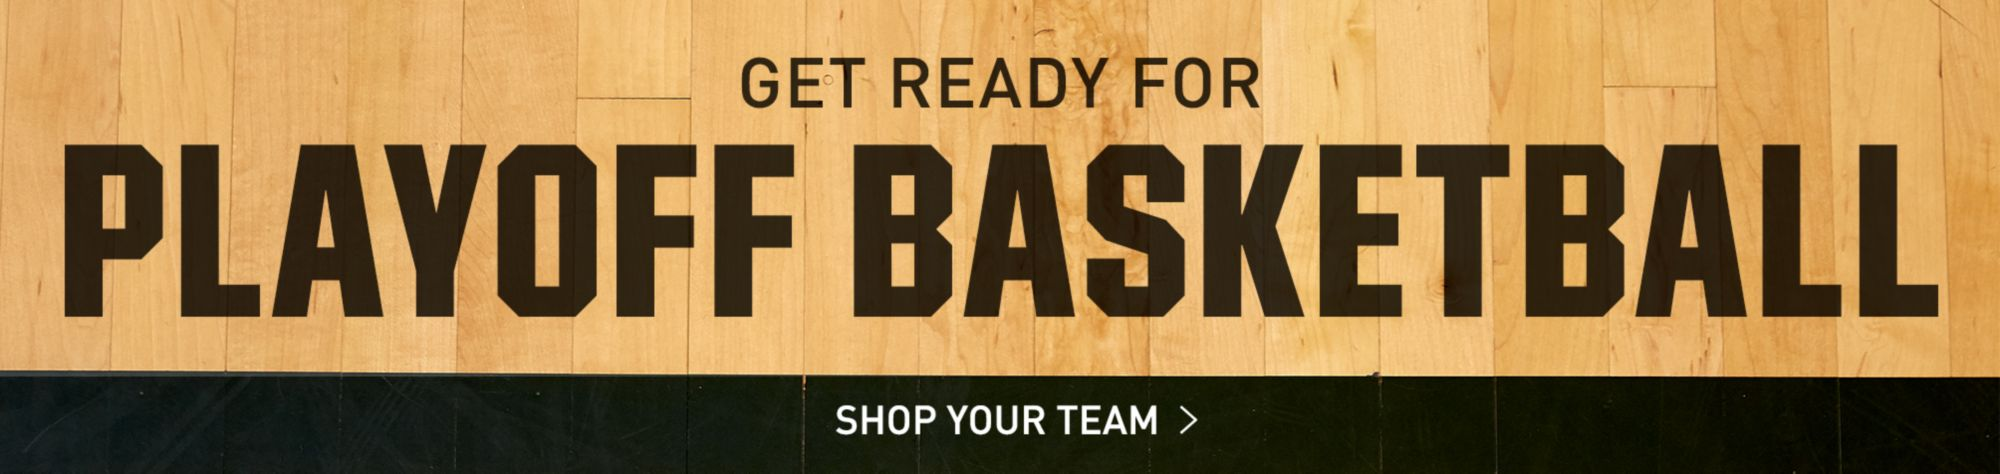 Get Ready For Playoff Basketball - Shop Your Team